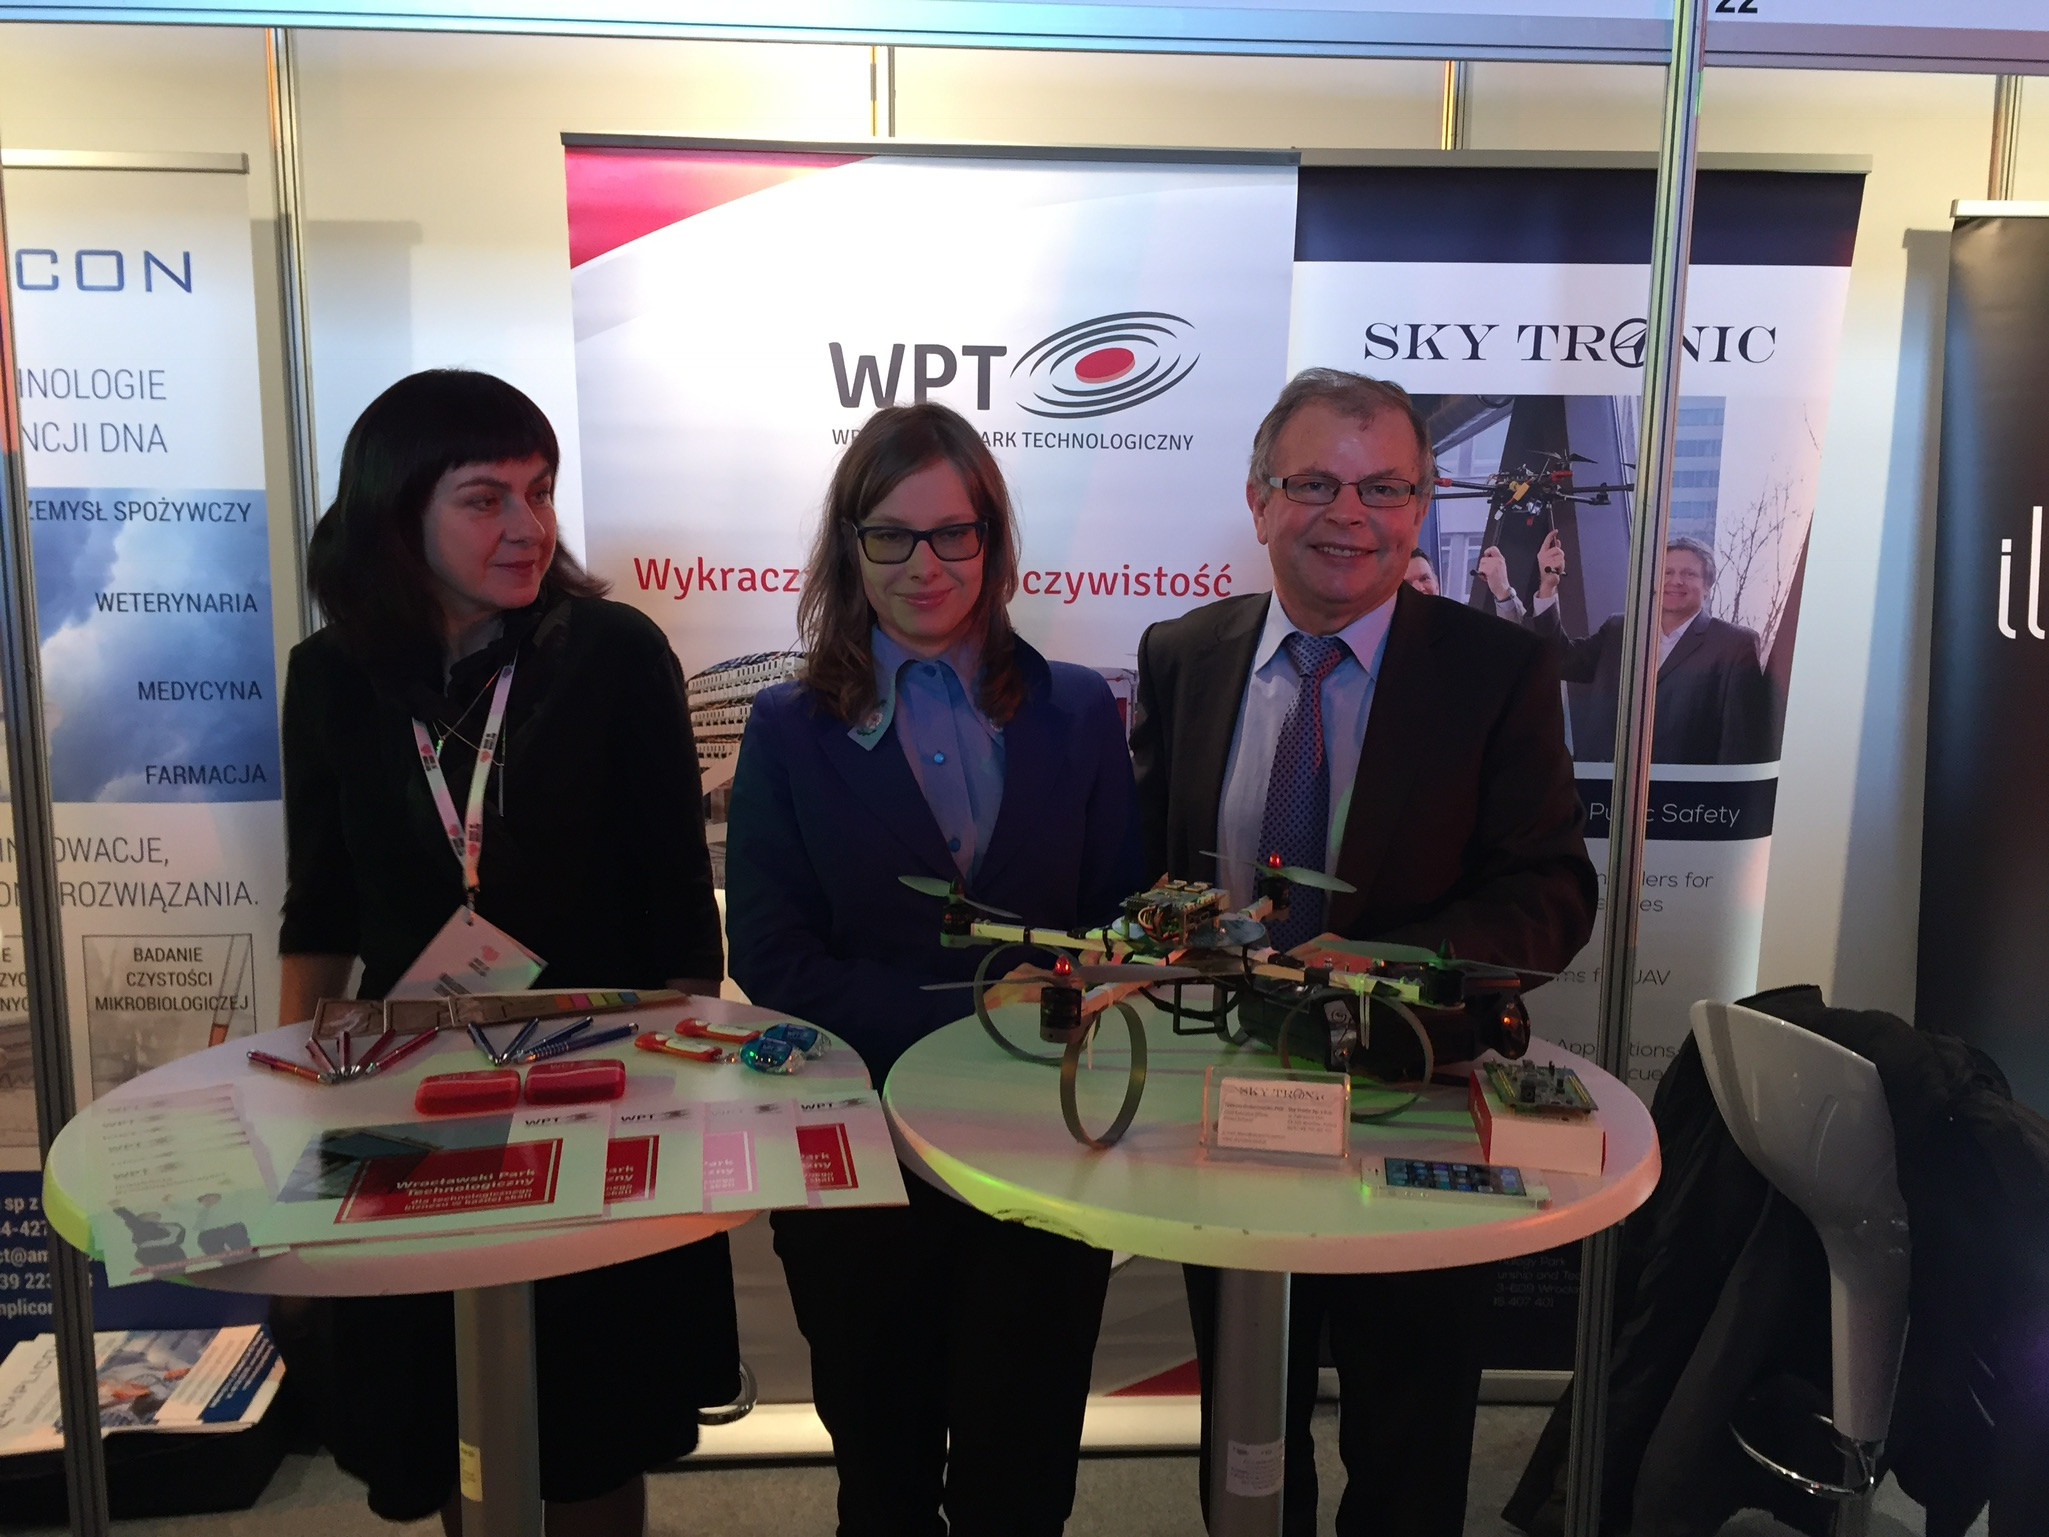 Sky Tronic presented its technology at Made in Wroclaw exhibition